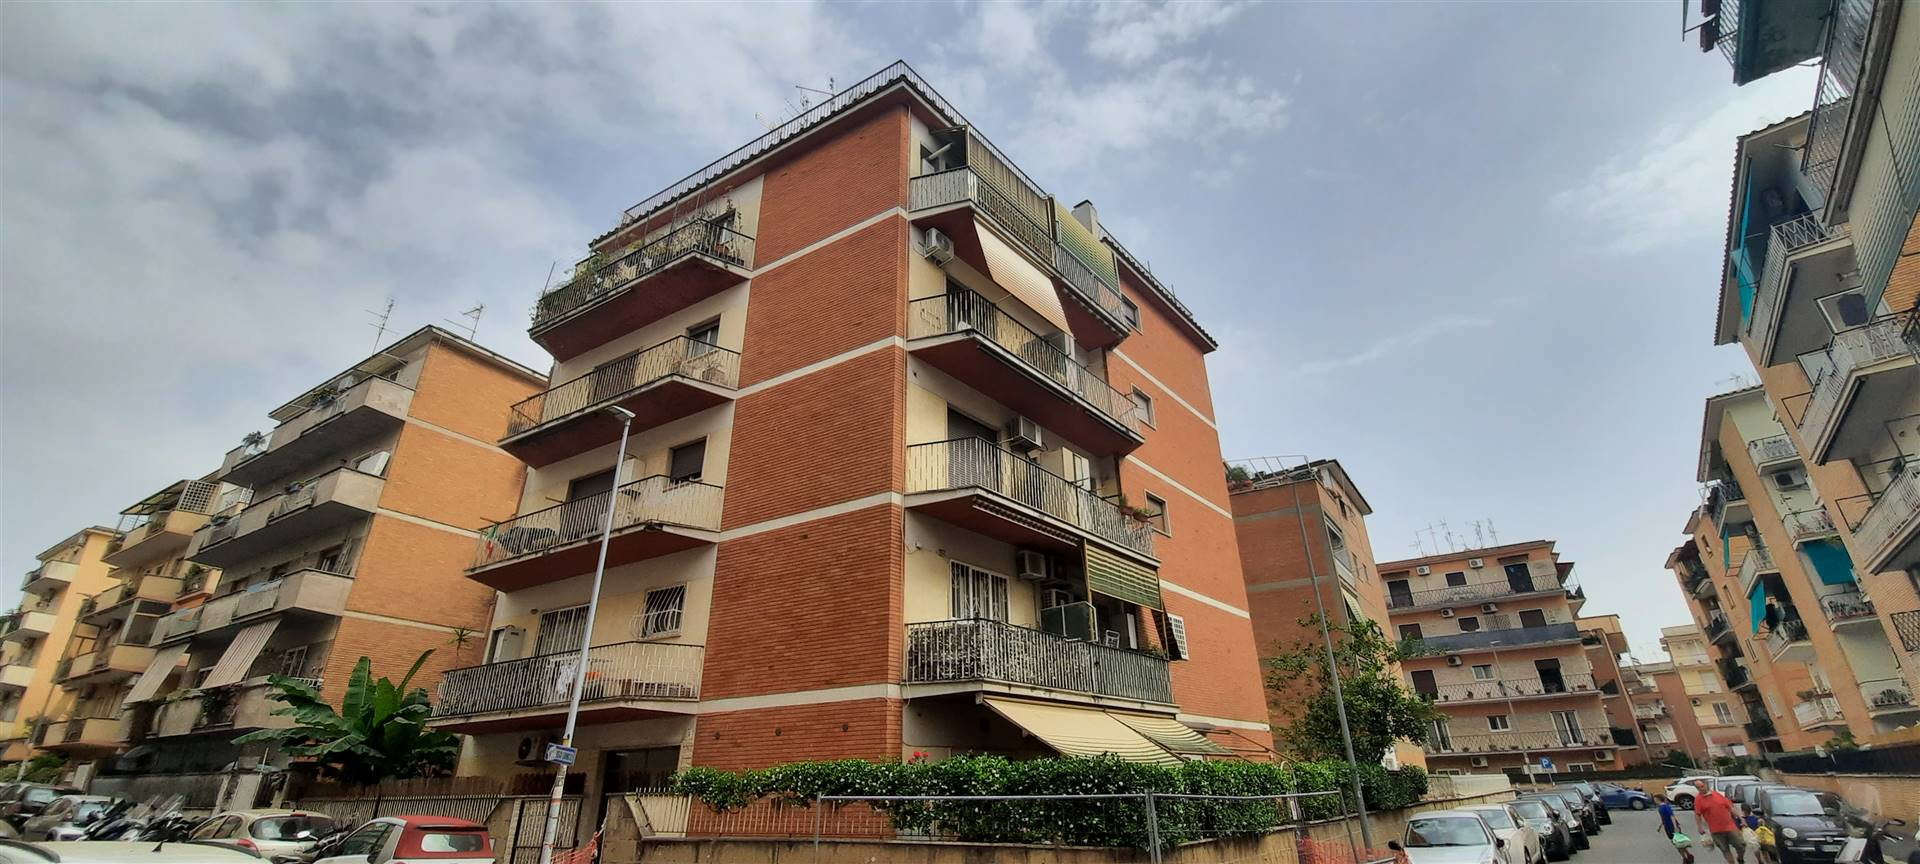 BRAVETTA, ROMA, Apartment for rent, Restored, Heating Individual heating system, Energetic class: G, Epi: 175 kwh/m2 year, placed at 3° on 4, composed by: 2 Rooms, Separate kitchen, , 1 Bedroom, 1